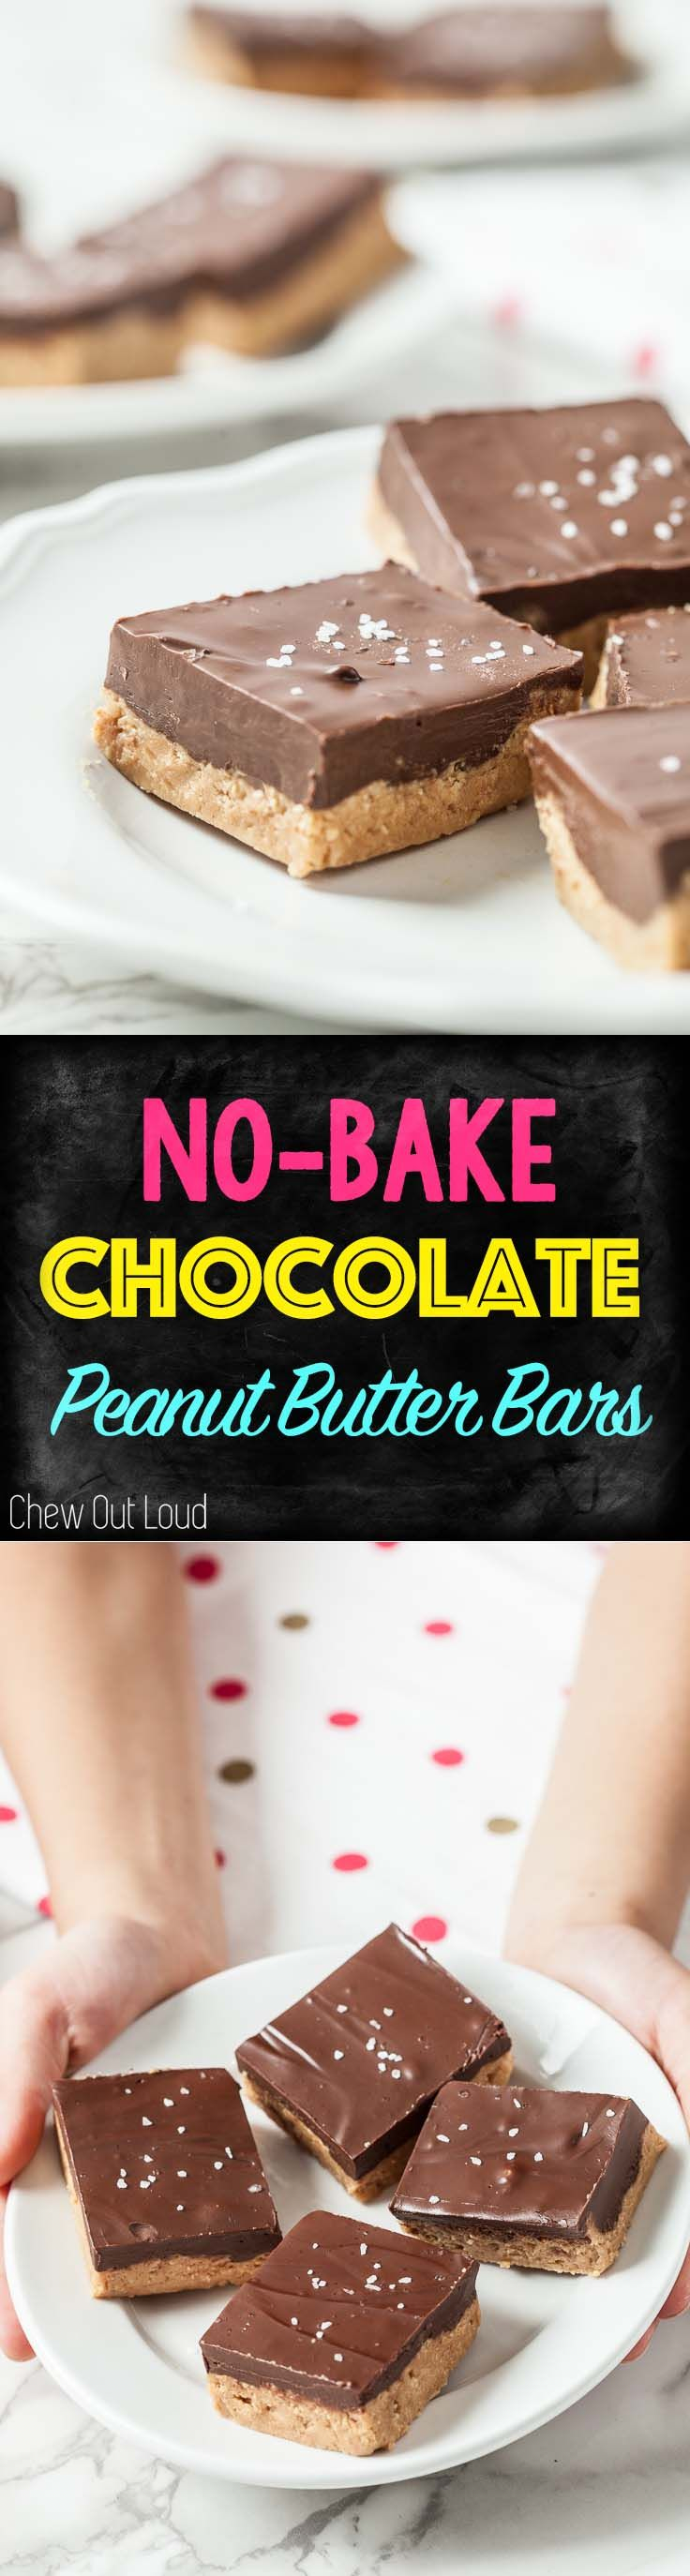 No Bake Chocolate Peanut Butter Bars. Make ahead, chill, and serve whenever you want! Freezes well. #chocolate #peanut #butter #peanutbutter #cookies #bars #dessert #sweets #treats #holidays #baking #recipe #delicious #chewoutloud www.chewoutloud.com